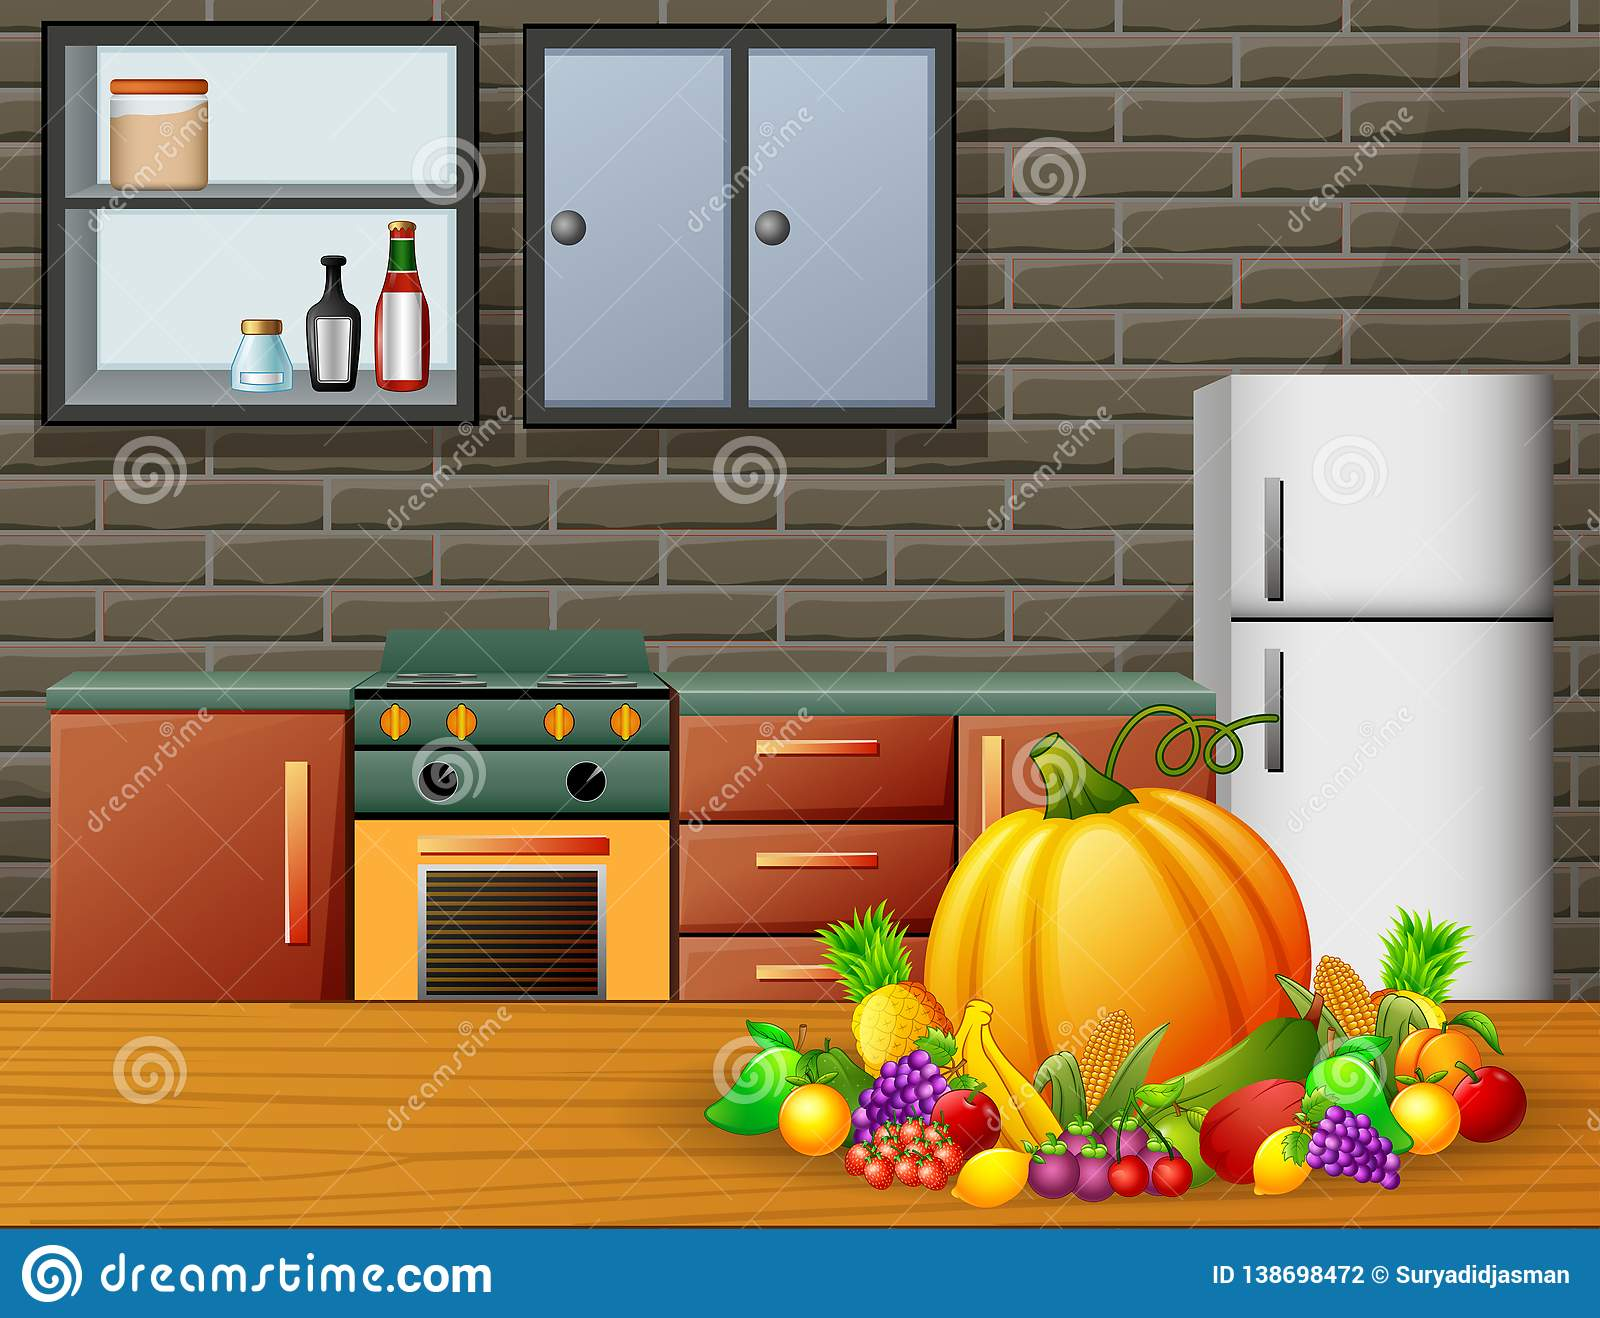 cartoon kitchen interior with furniture and fruits on a